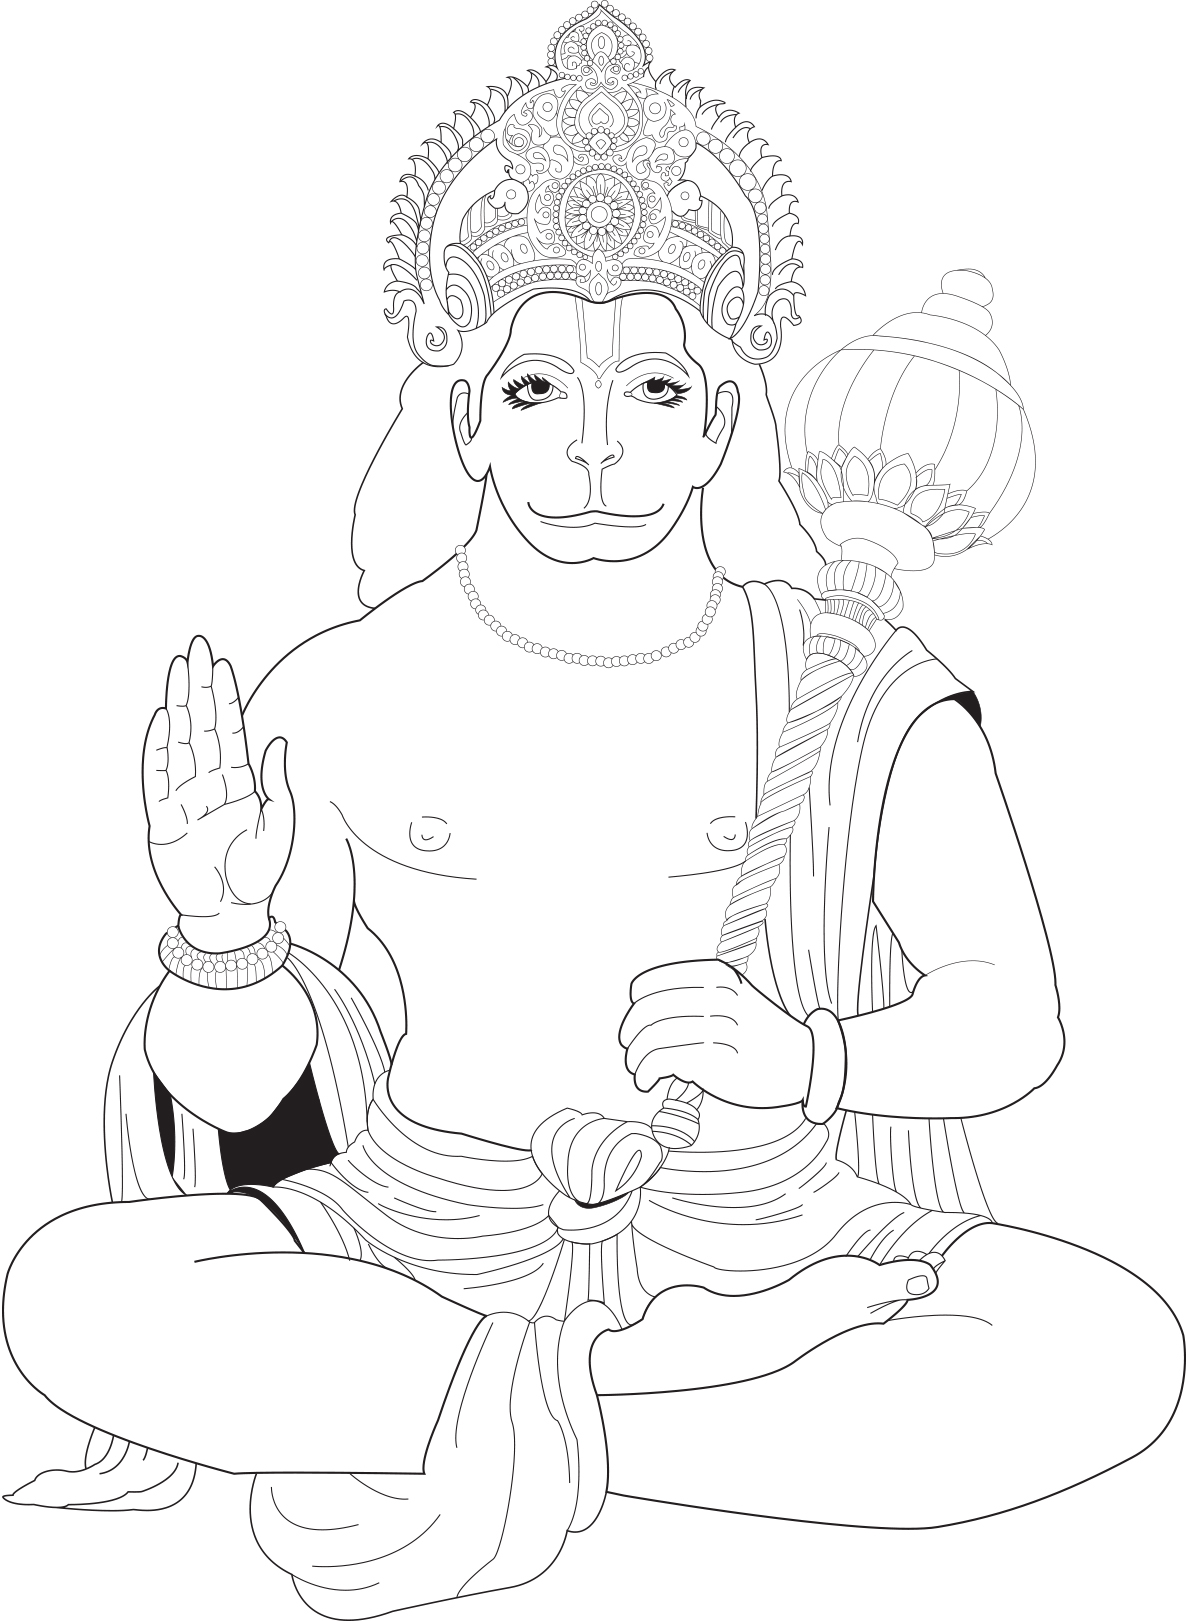 Hanuman India Adult Coloring Pages Page 2